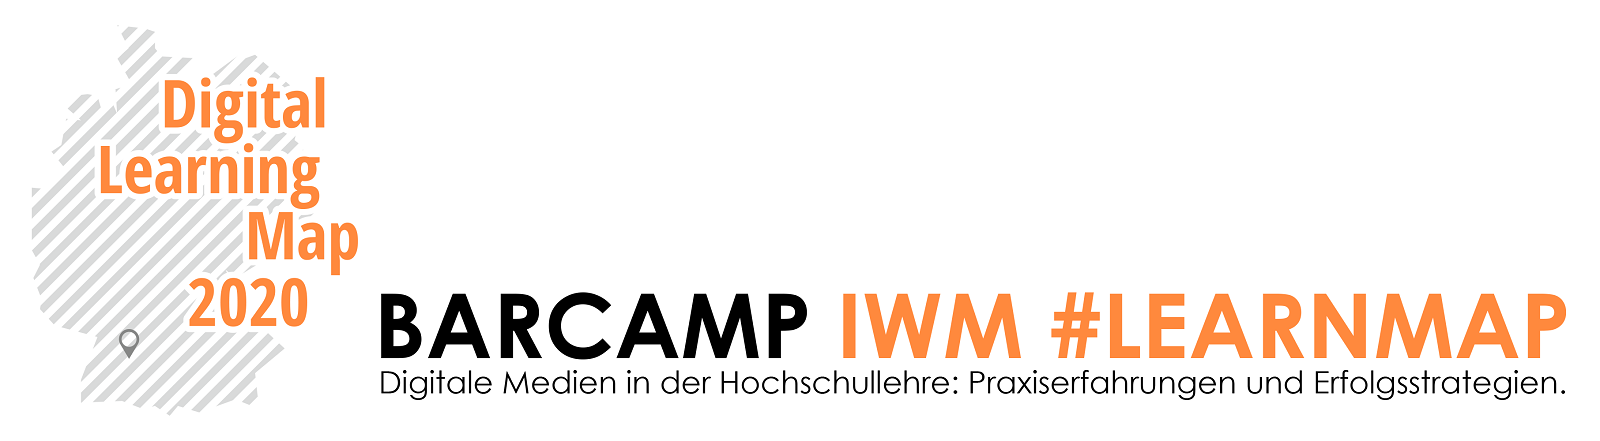 2019-07-11_Barcamp_IWM_LearnMap_Logo